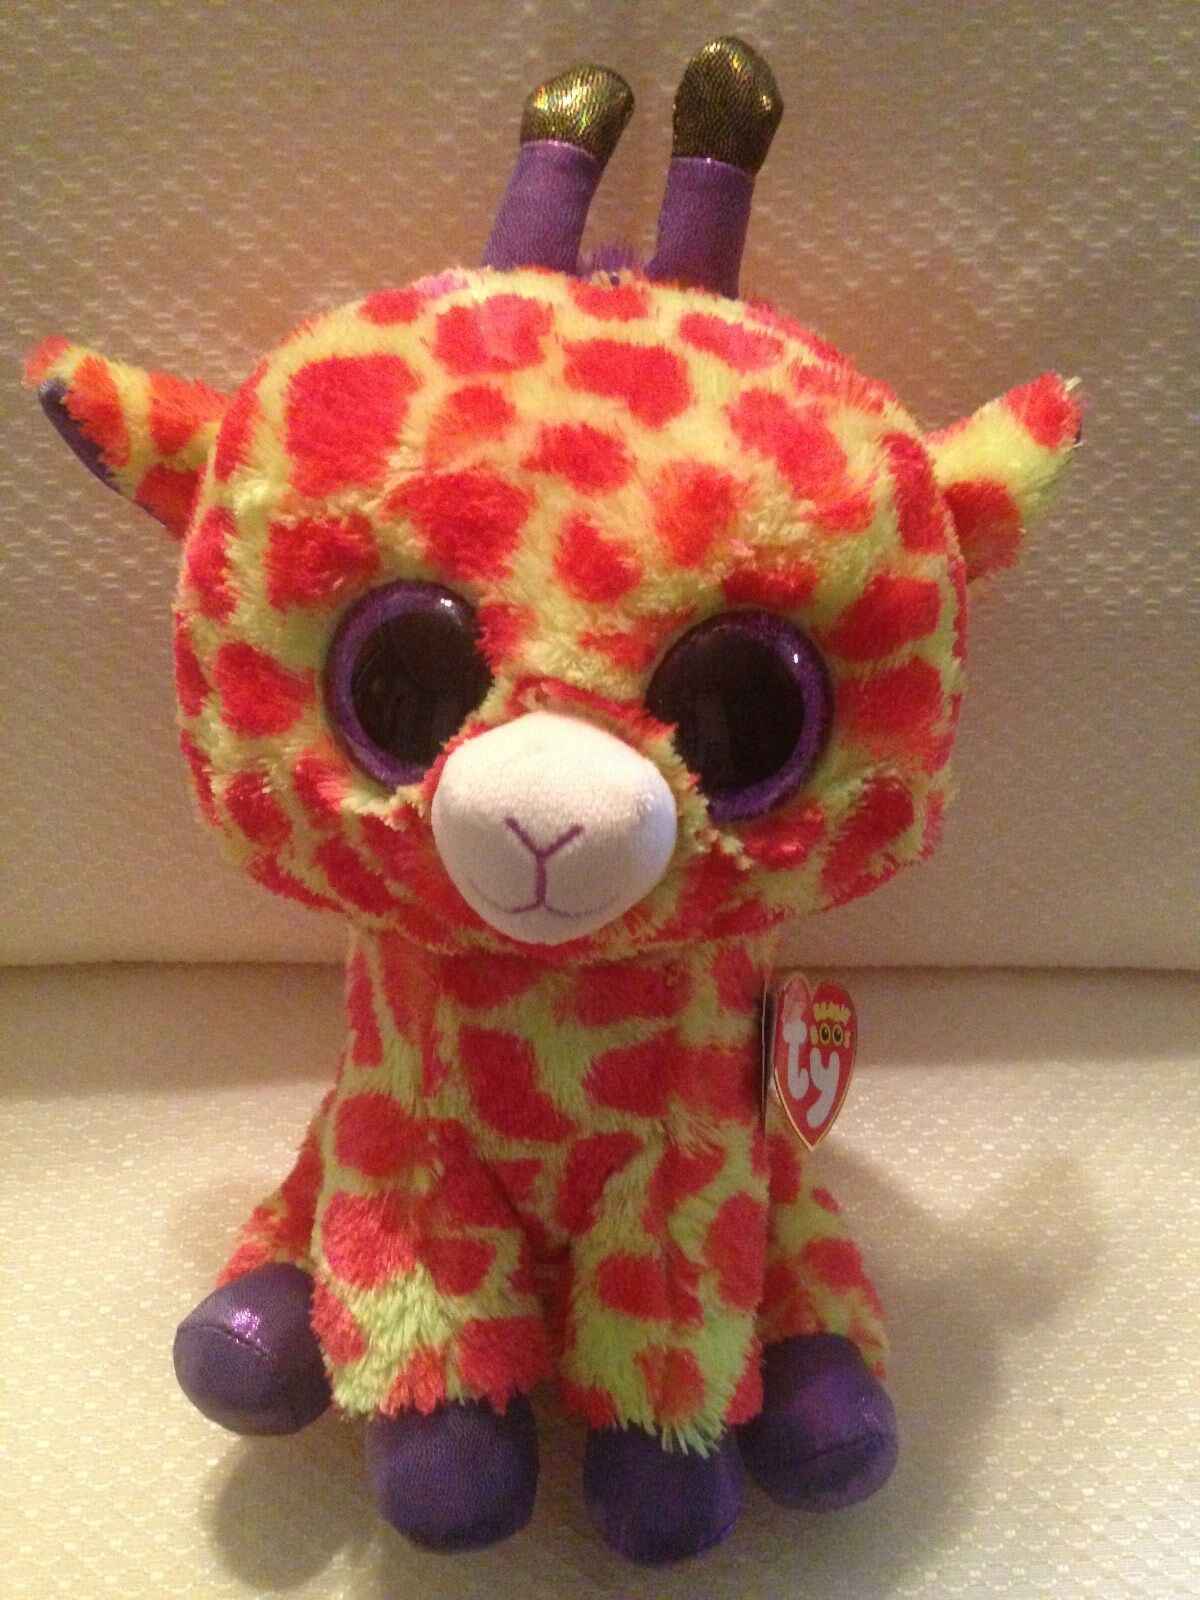 Brand New with tags TY Beanie Boo Darci Giraffe 9 in  Retired Justice Exclusive